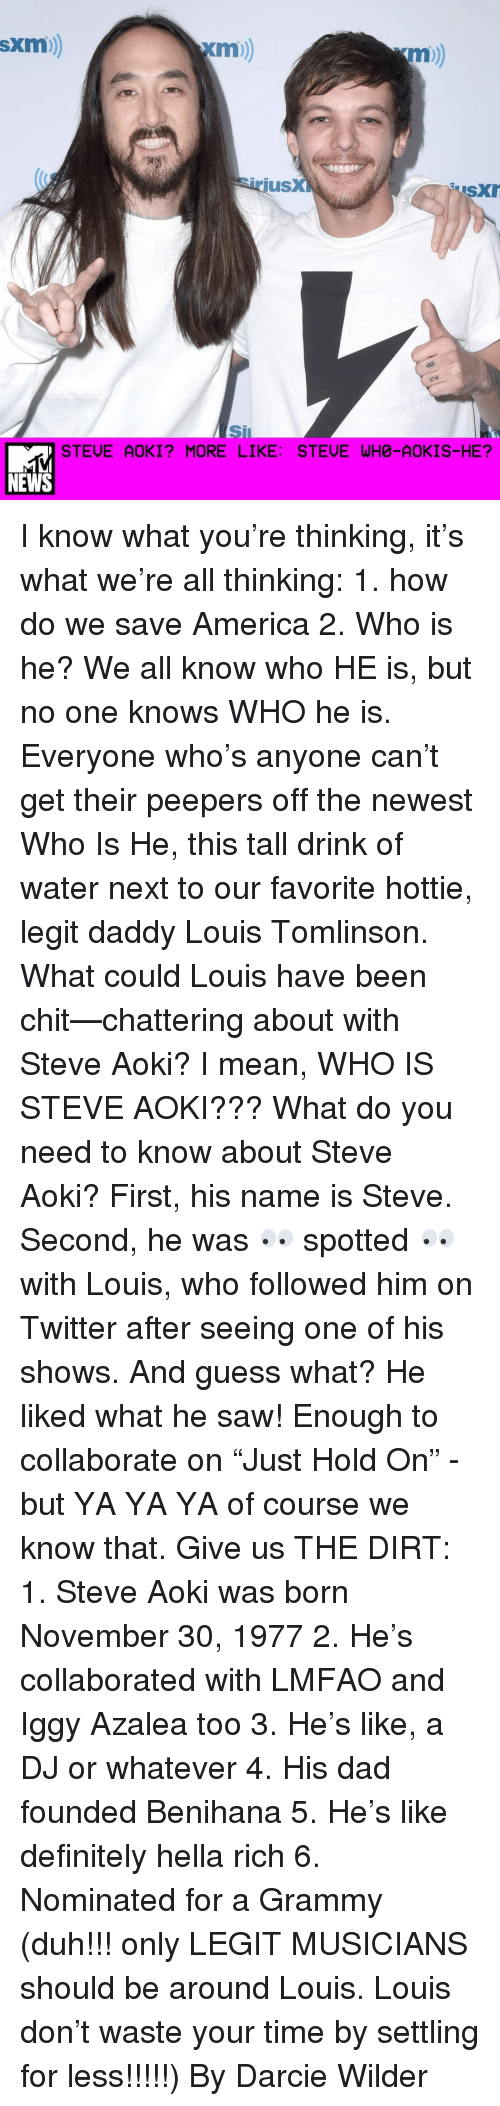 "Grammys, Iggy Azalea, and Memes: SXm  Xm))  irius  SXIr  STEUE AOKI? MORE LIKE: STEUE WHO-AOKIS-HE?  NEWS I know what you're thinking, it's what we're all thinking: 1. how do we save America 2. Who is he? We all know who HE is, but no one knows WHO he is. Everyone who's anyone can't get their peepers off the newest Who Is He, this tall drink of water next to our favorite hottie, legit daddy Louis Tomlinson. What could Louis have been chit—chattering about with Steve Aoki? I mean, WHO IS STEVE AOKI??? What do you need to know about Steve Aoki? First, his name is Steve. Second, he was 👀 spotted 👀 with Louis, who followed him on Twitter after seeing one of his shows. And guess what? He liked what he saw! Enough to collaborate on ""Just Hold On"" - but YA YA YA of course we know that. Give us THE DIRT: 1. Steve Aoki was born November 30, 1977 2. He's collaborated with LMFAO and Iggy Azalea too 3. He's like, a DJ or whatever 4. His dad founded Benihana 5. He's like definitely hella rich 6. Nominated for a Grammy (duh!!! only LEGIT MUSICIANS should be around Louis. Louis don't waste your time by settling for less!!!!!) By Darcie Wilder"